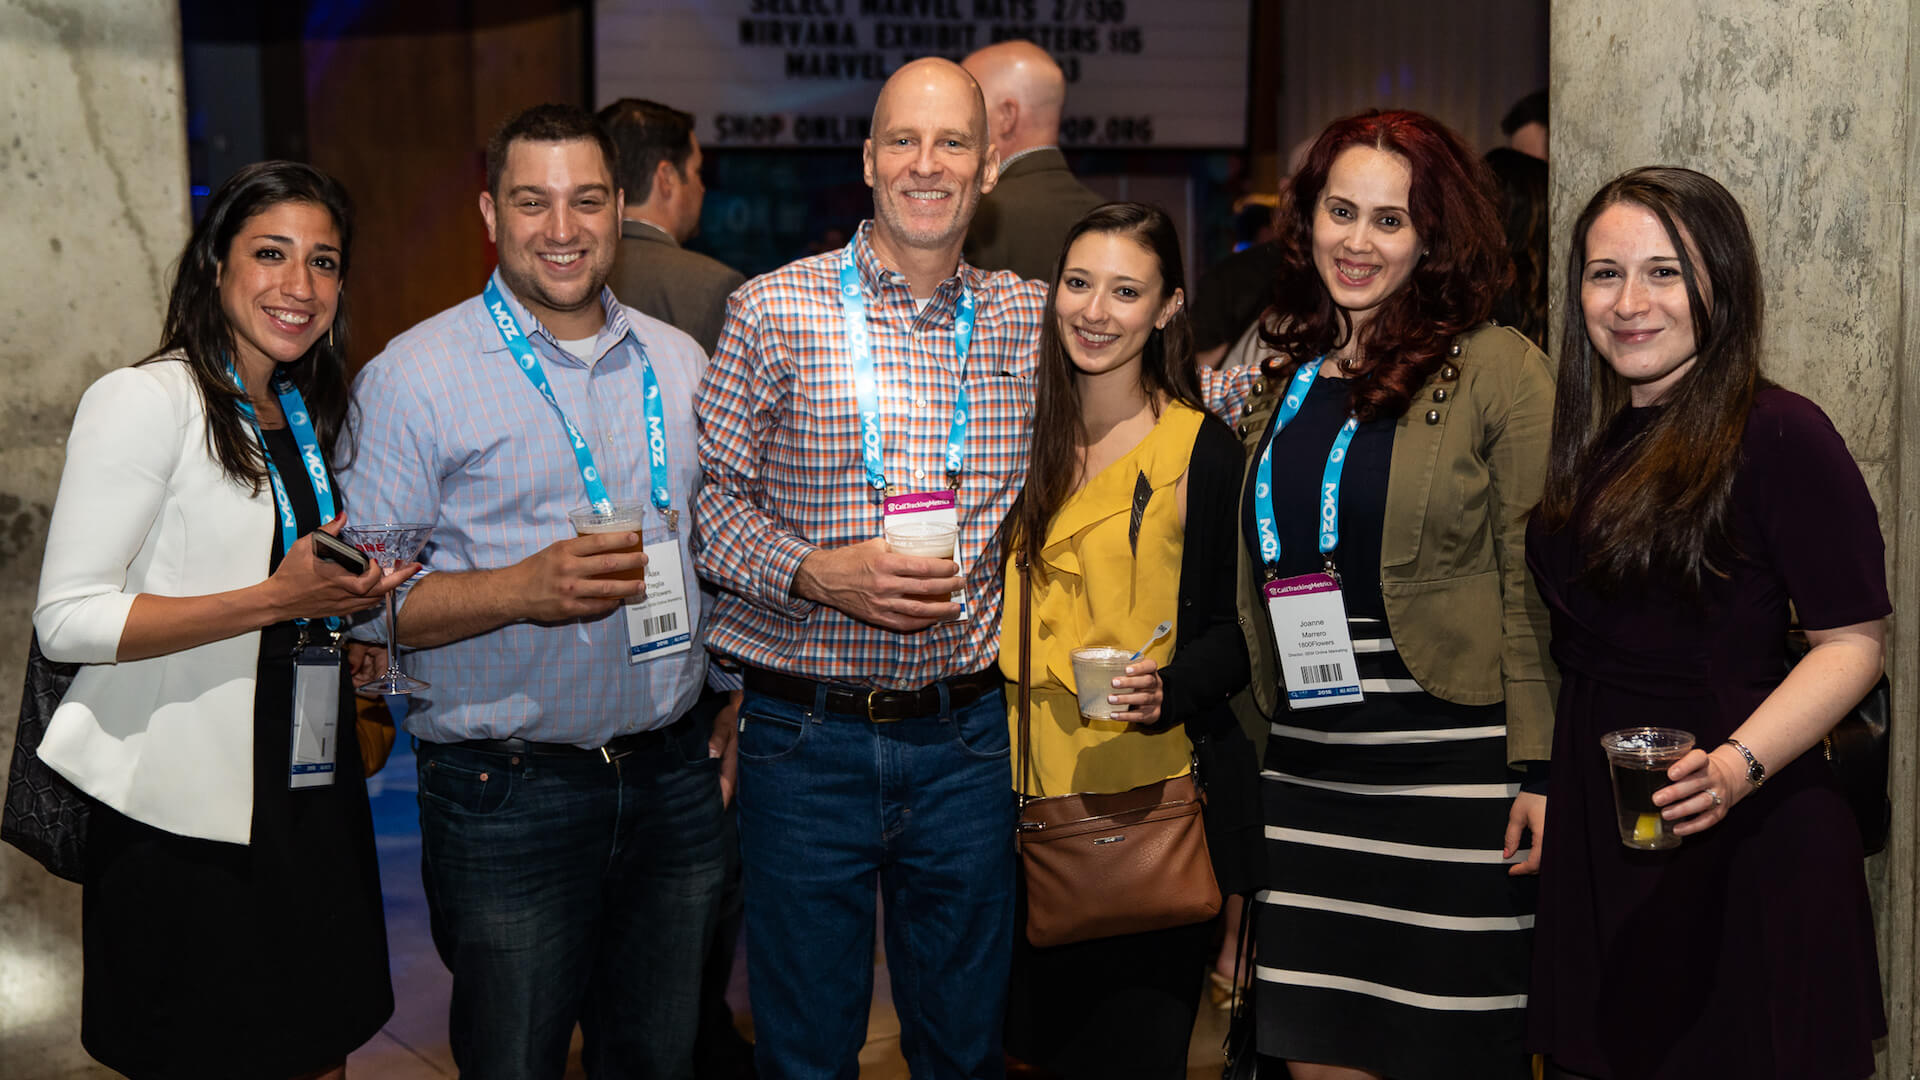 See the SMX East agenda